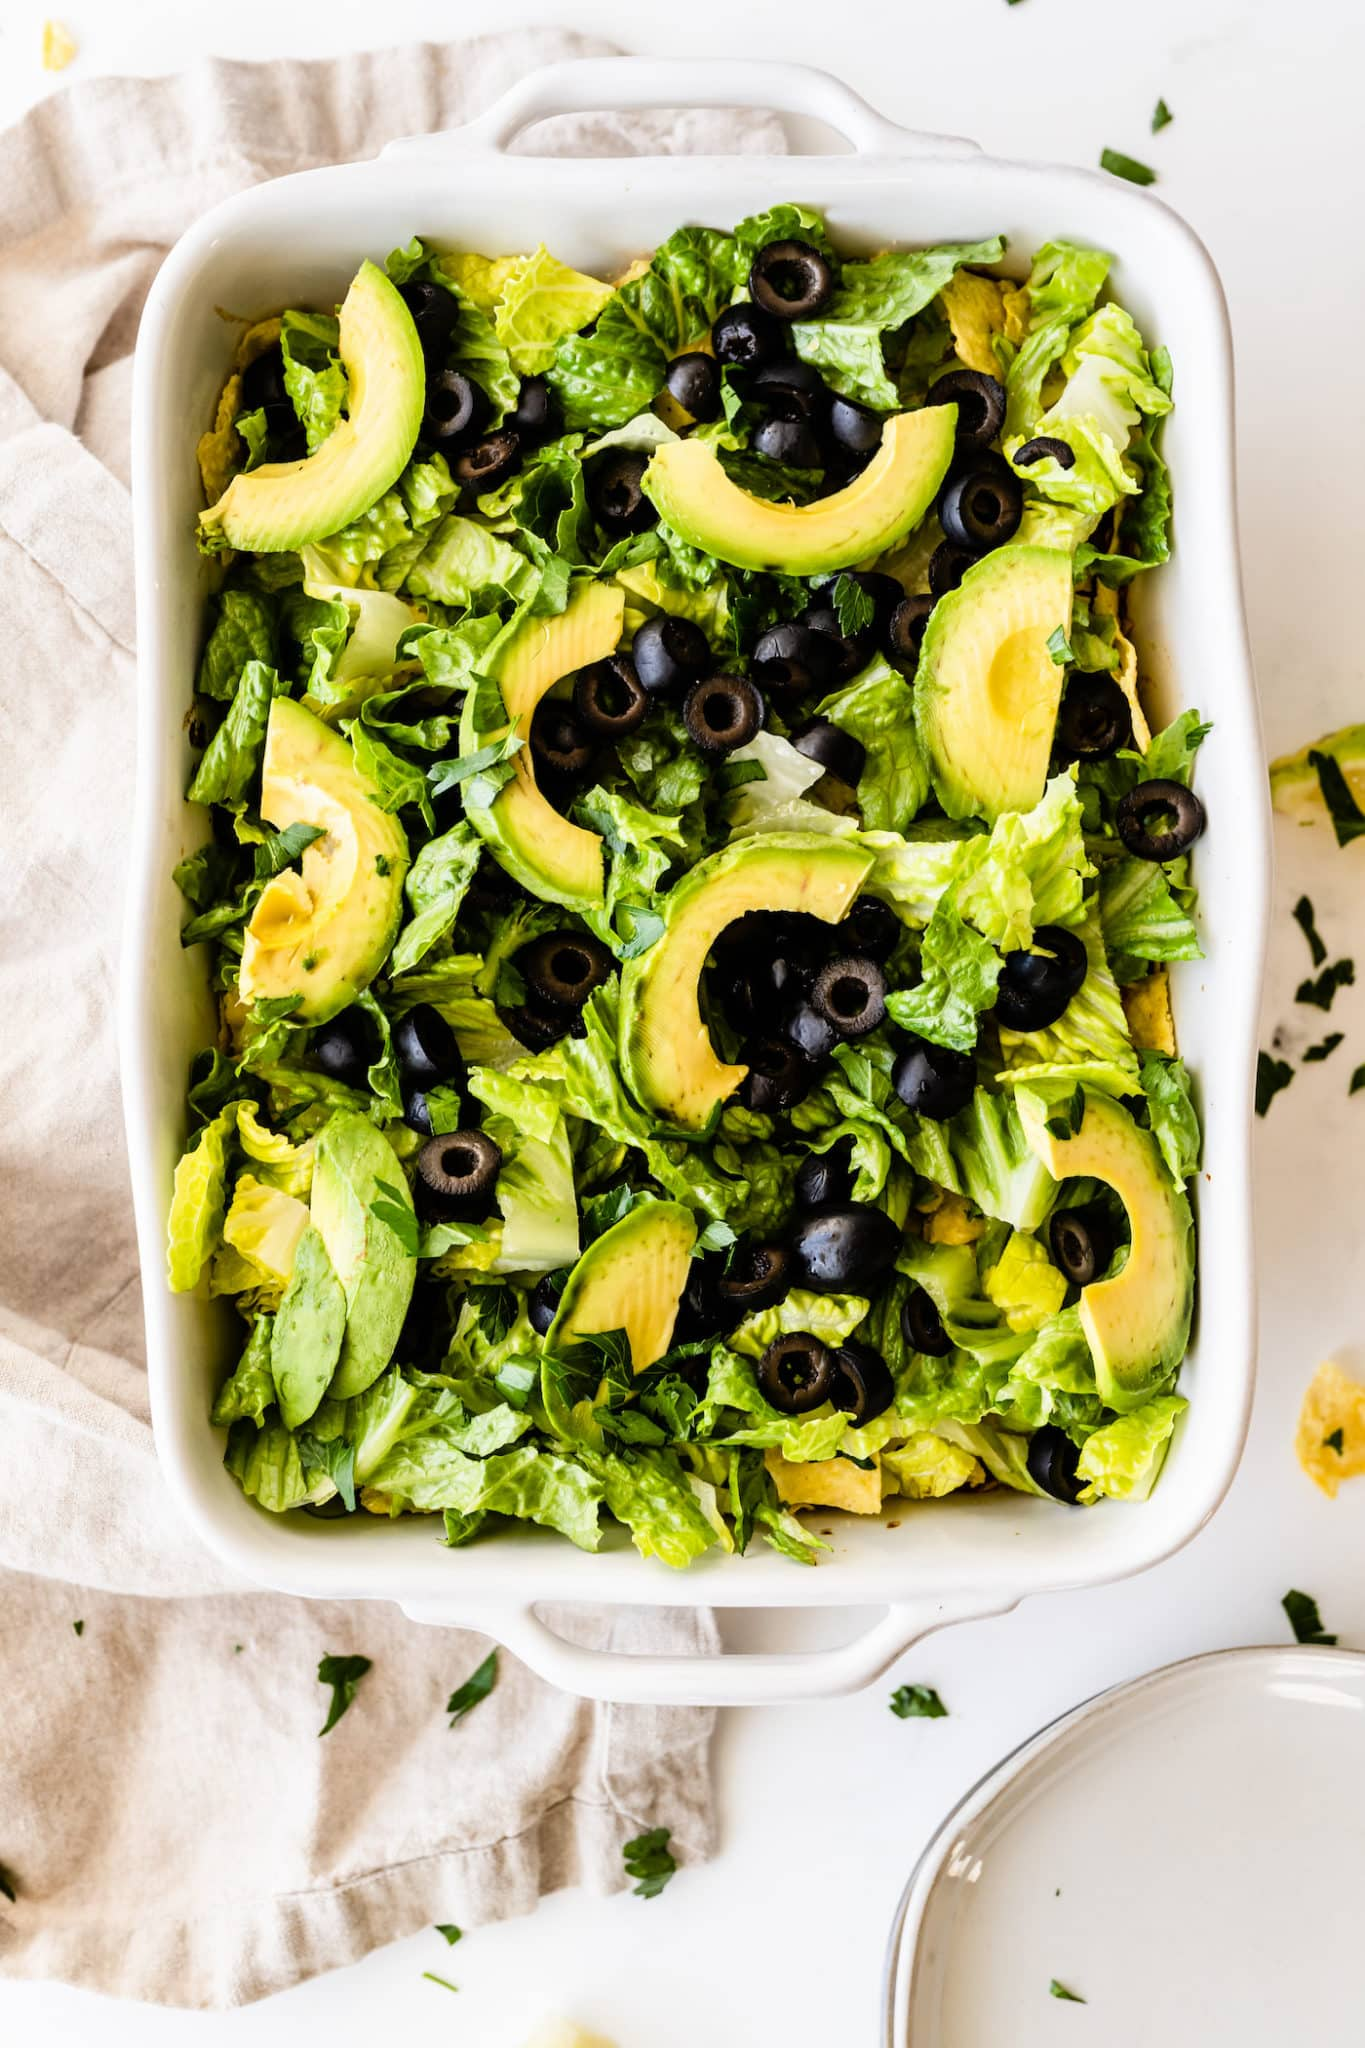 Vegan taco casserole with lettuce, olives, and avocado